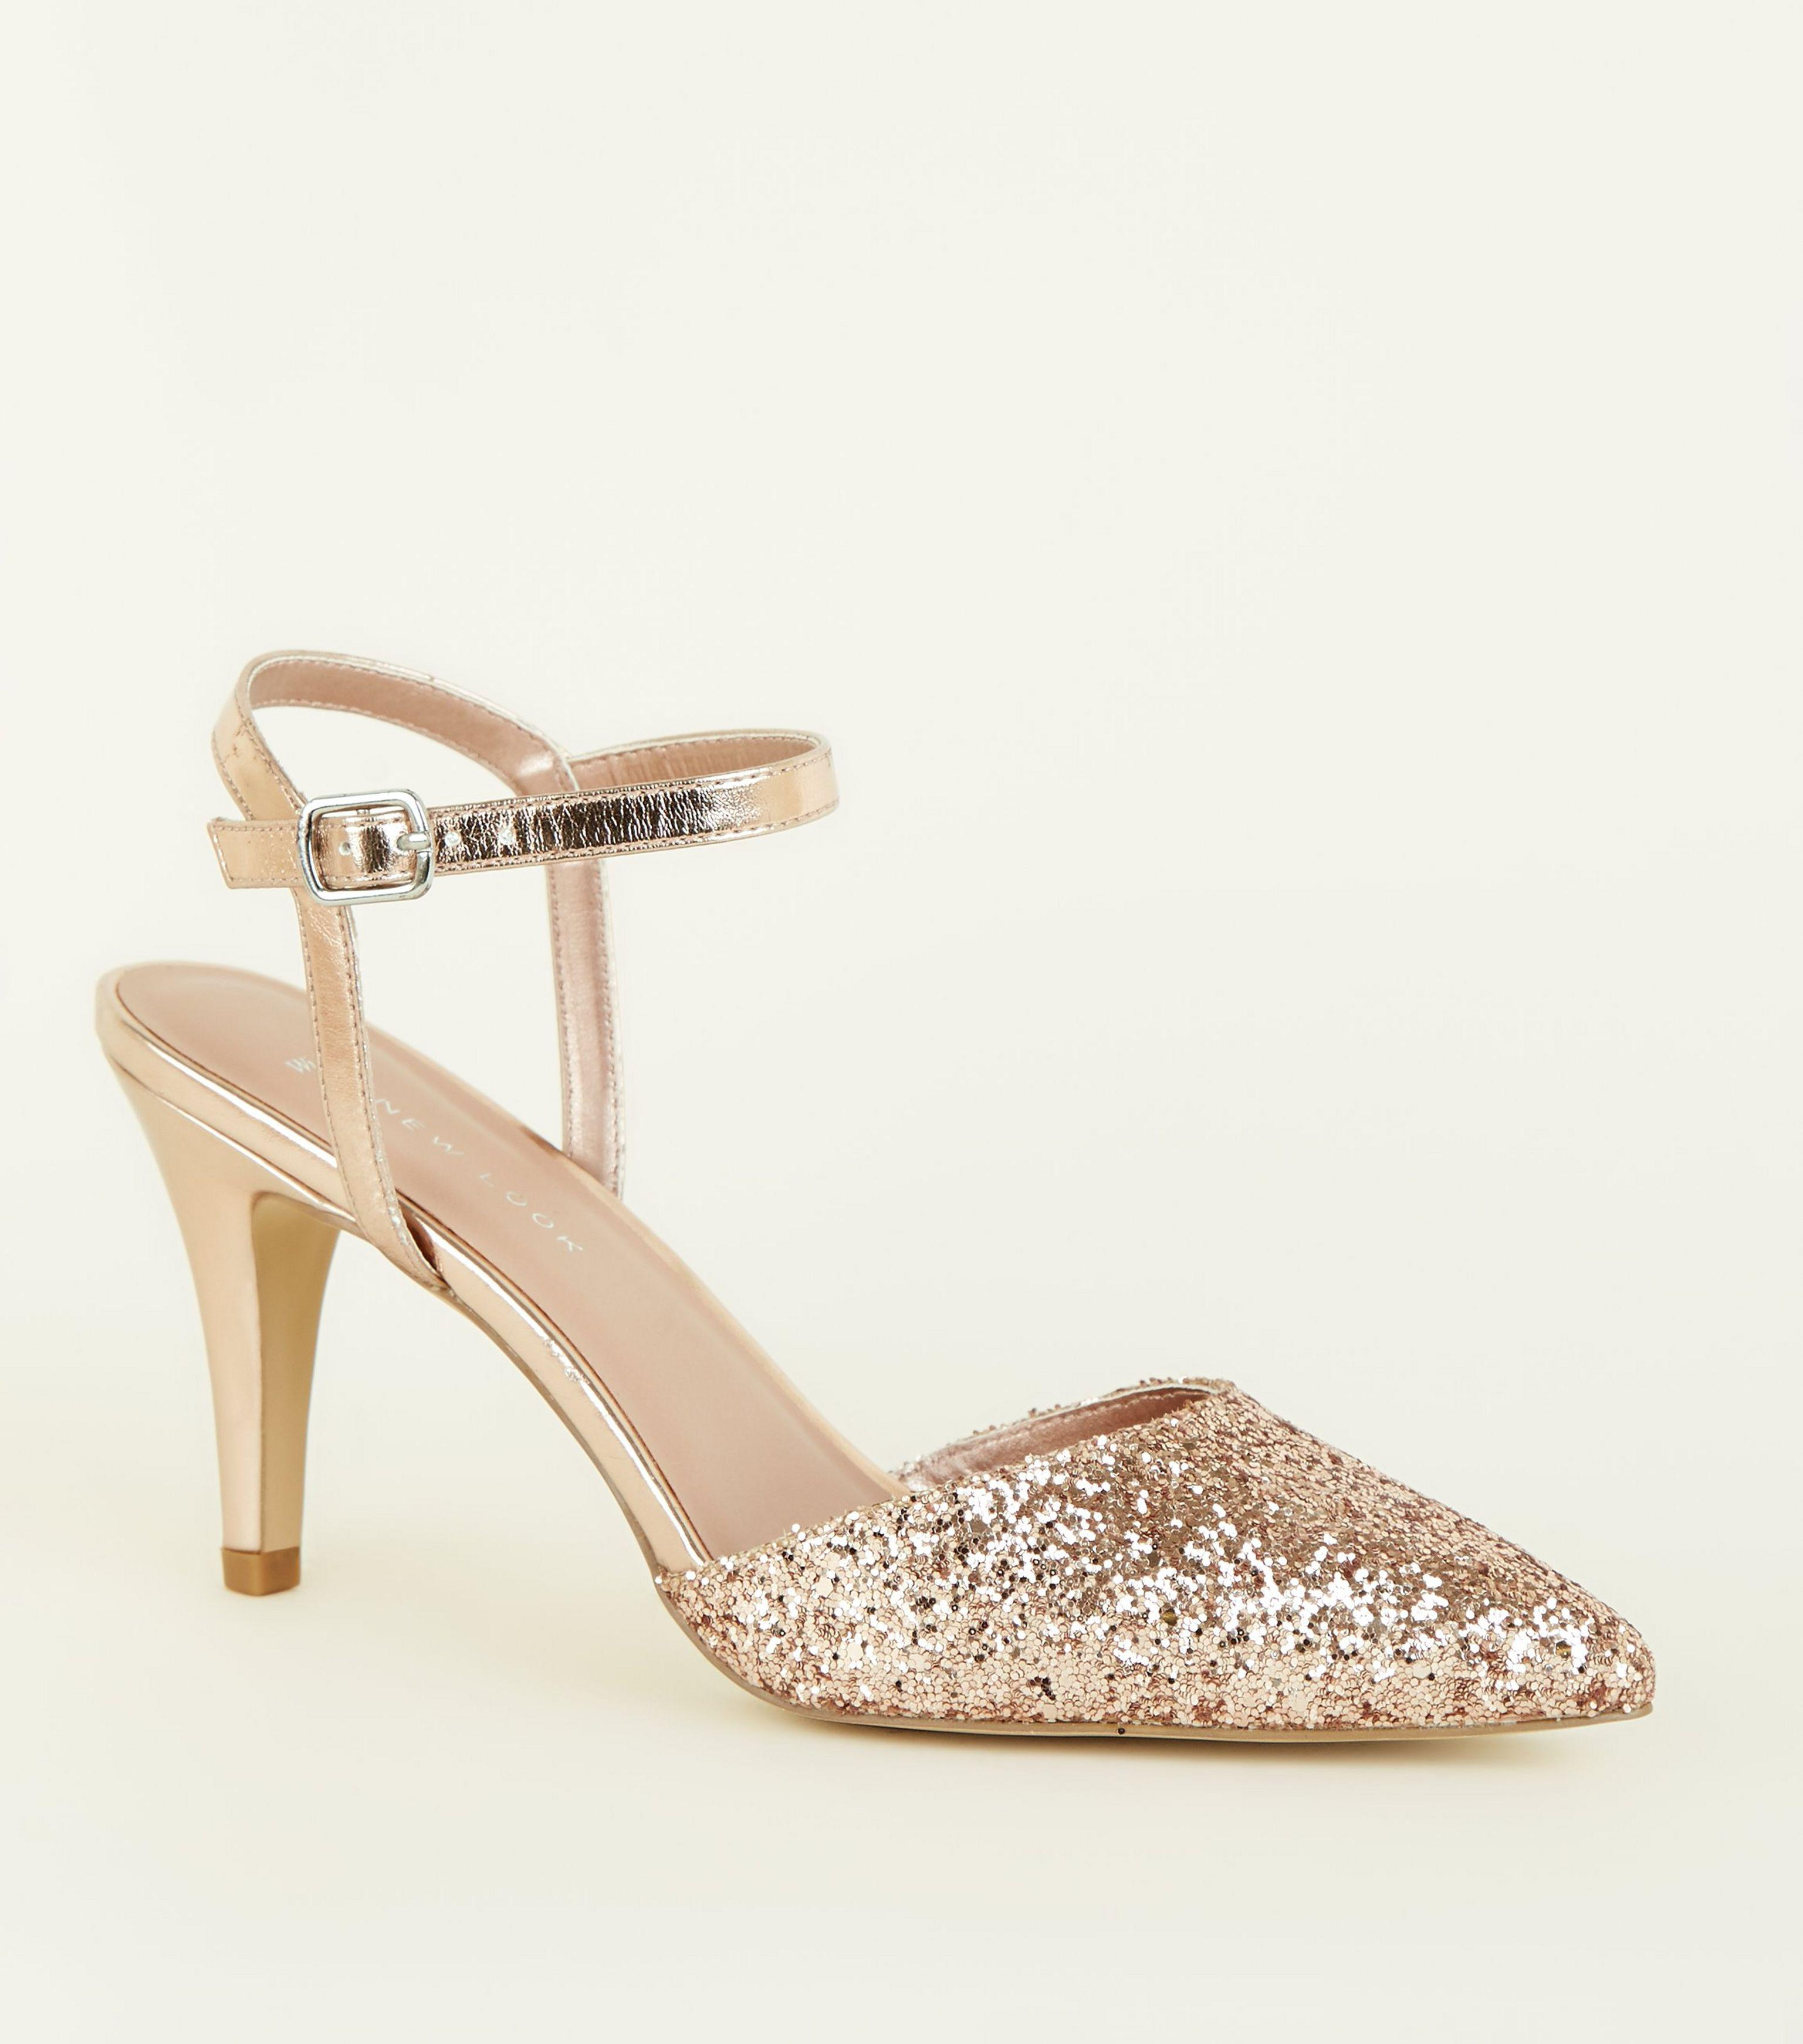 89c016fde22 New Look Wide Fit Rose Gold Glitter Stiletto Heels In Metallic Lyst. Gold  Glitter Comfort Court Shoes ...